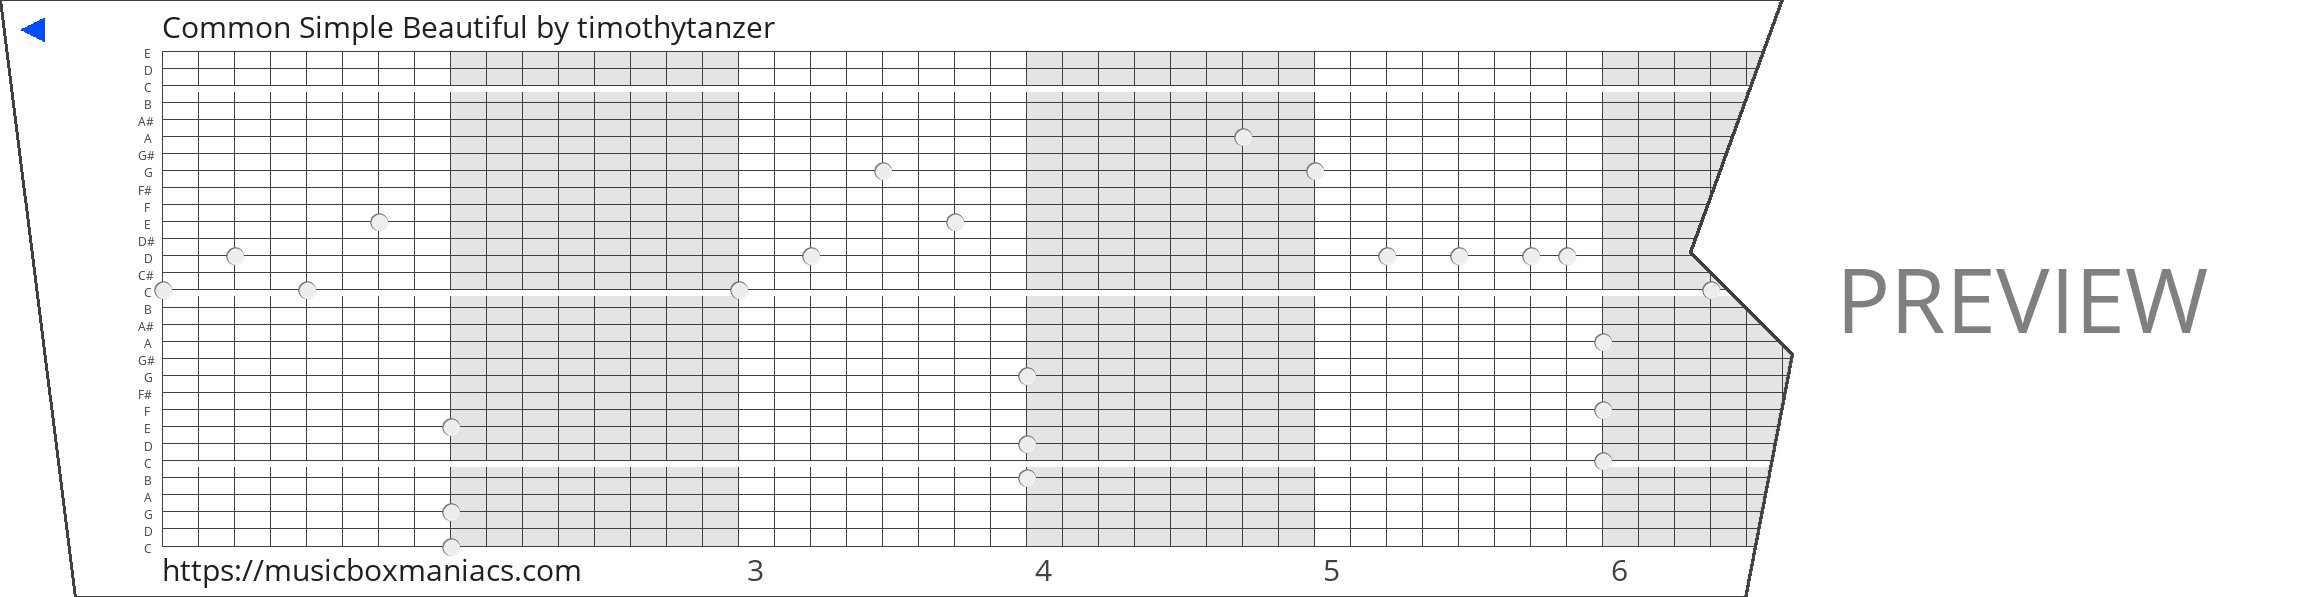 Common Simple Beautiful 30 note music box paper strip